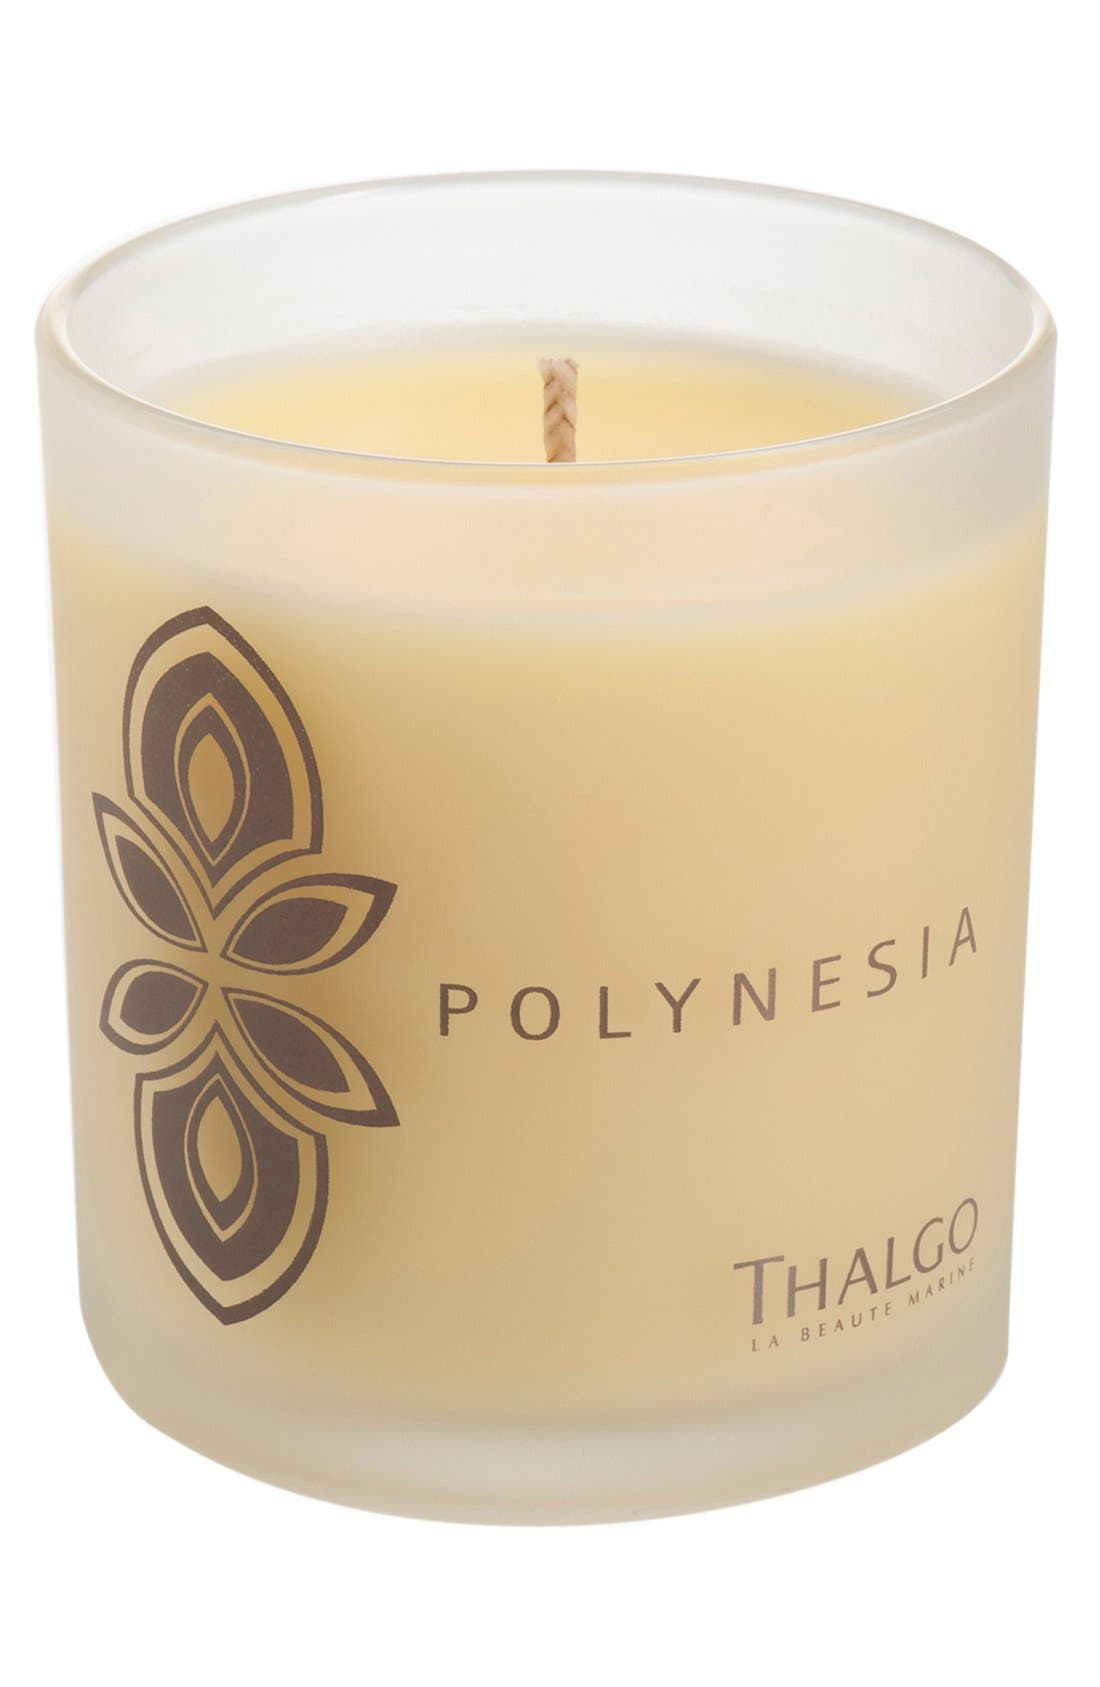 Main Image - Thalgo 'Polynesia' Scented Candle